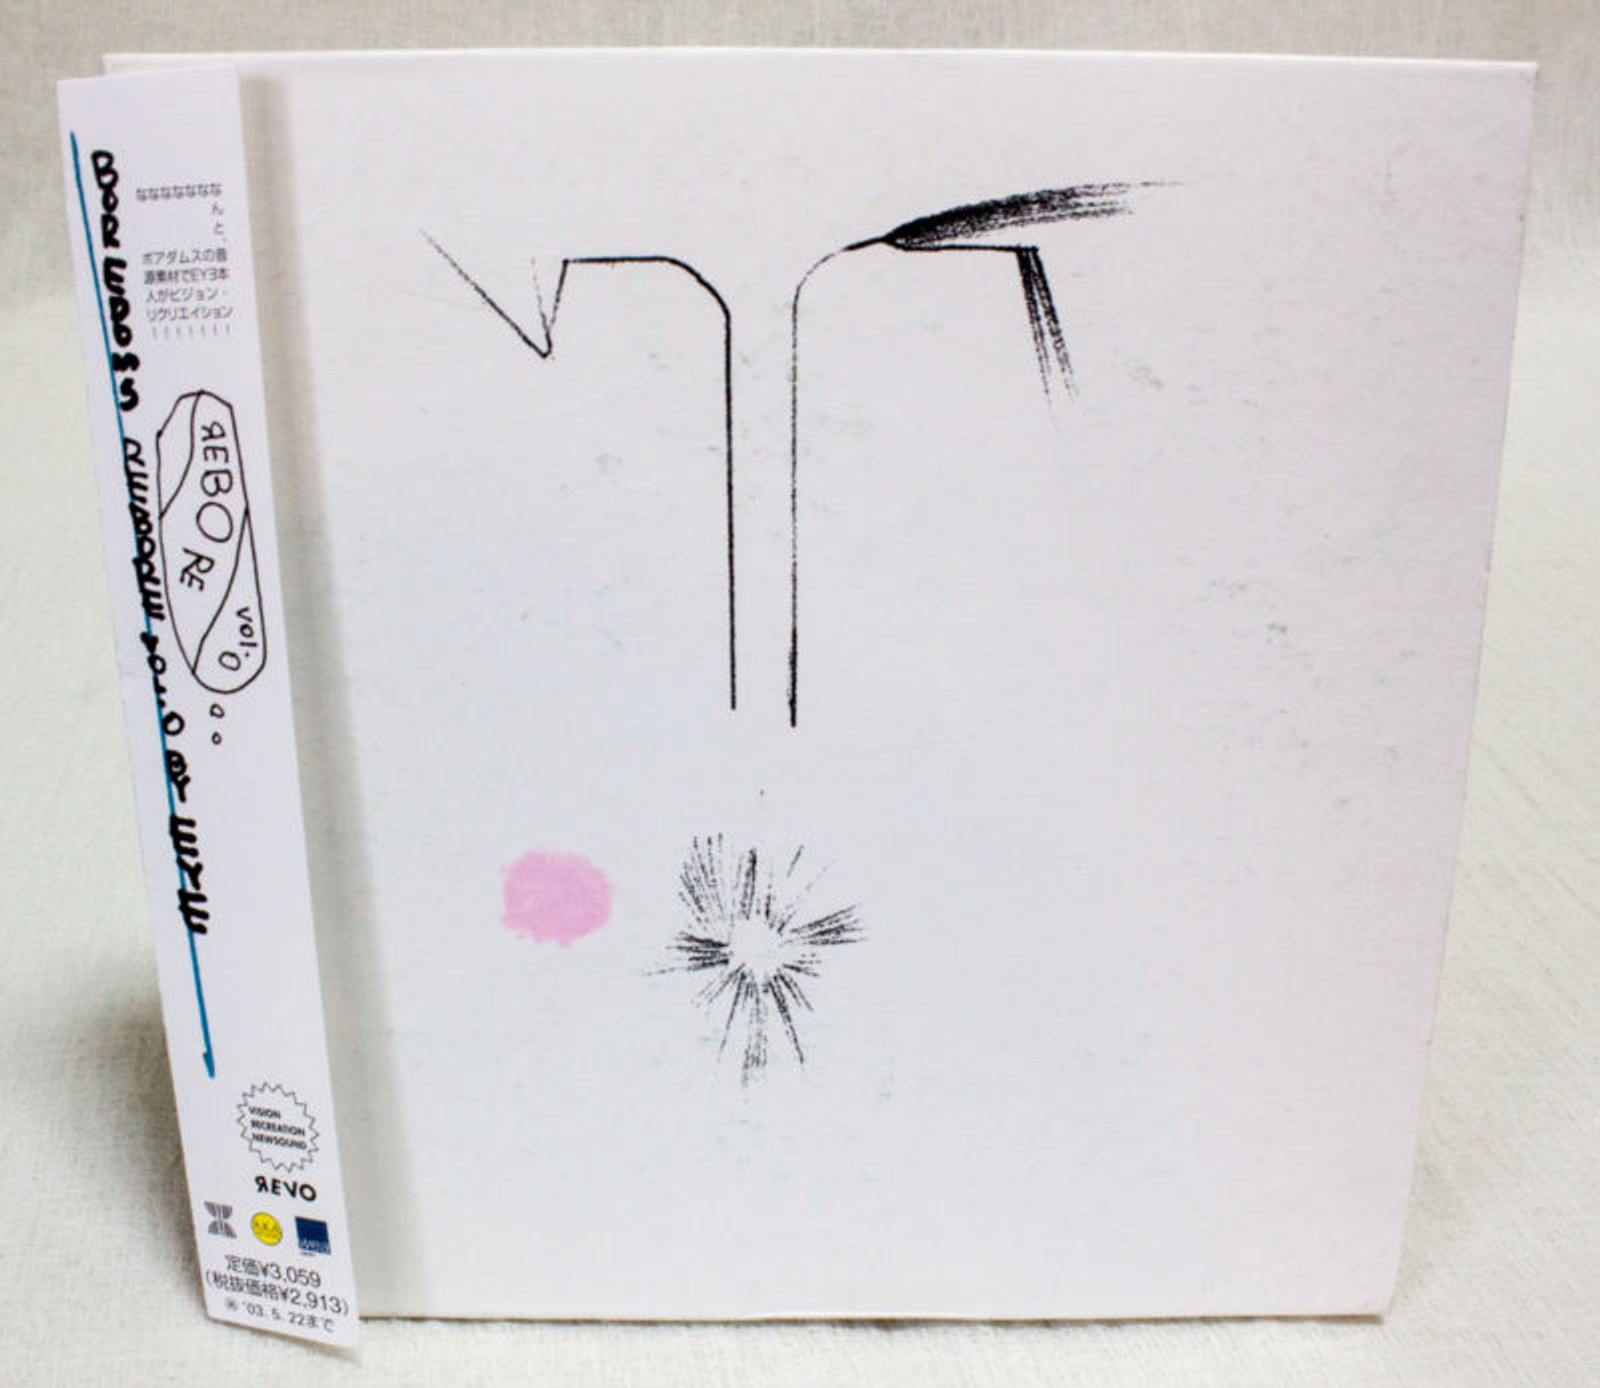 REBORE Vol.00 EYE Yamataka (Boredoms) MIX-CD JAPAN VOREDOMS YAMATSUKA